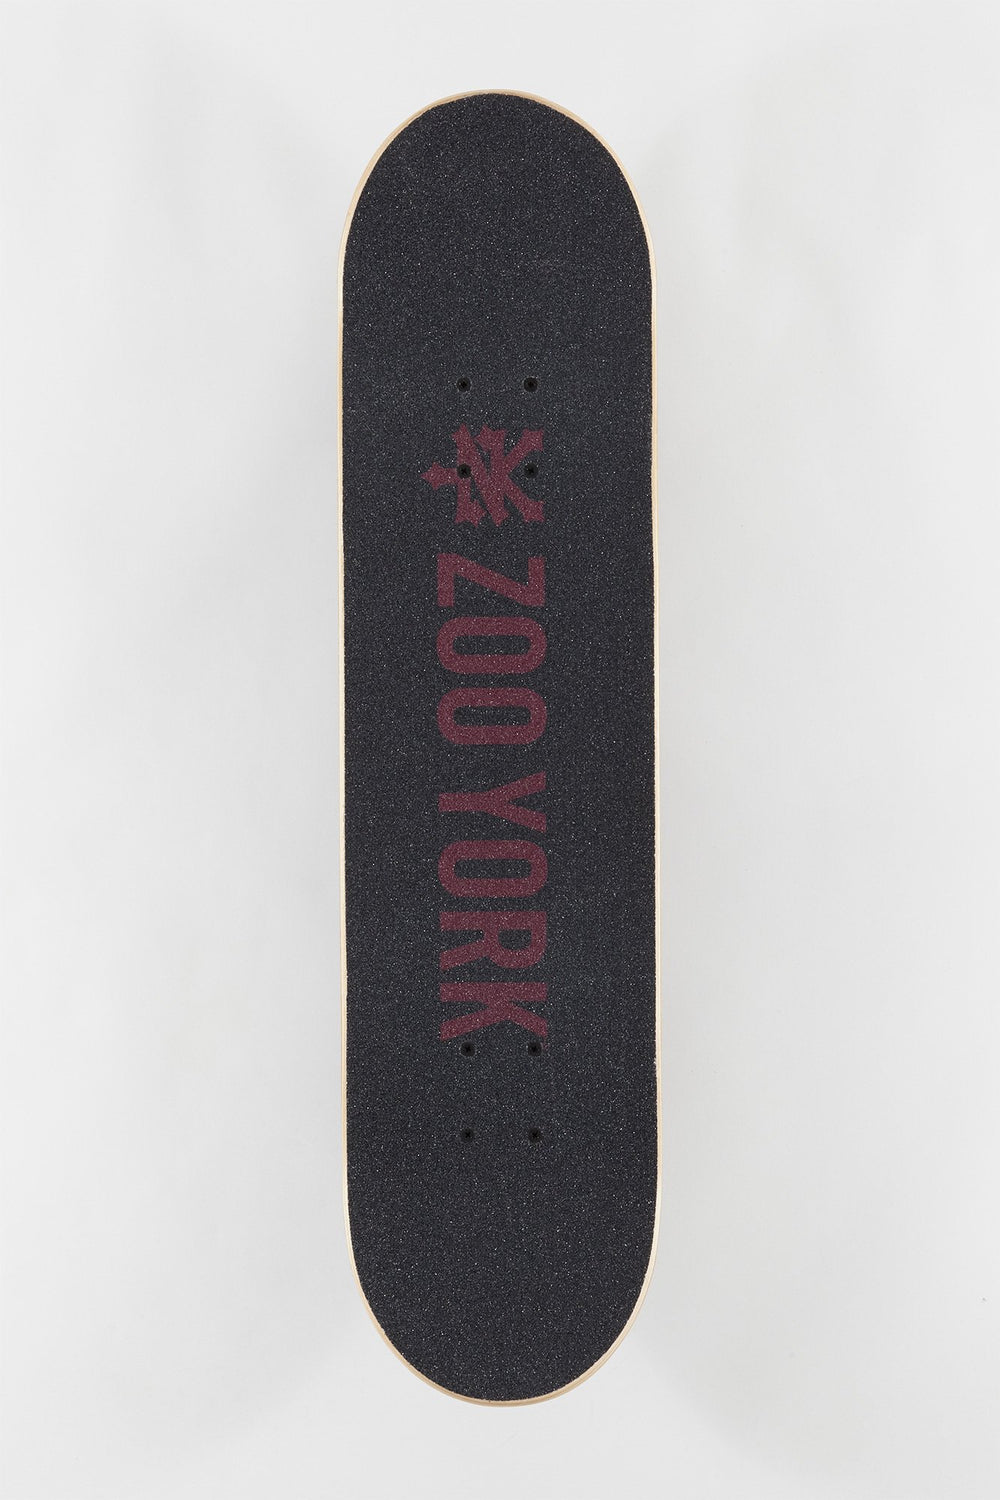 Zoo York NYC Cityscape Skateboard 7.75